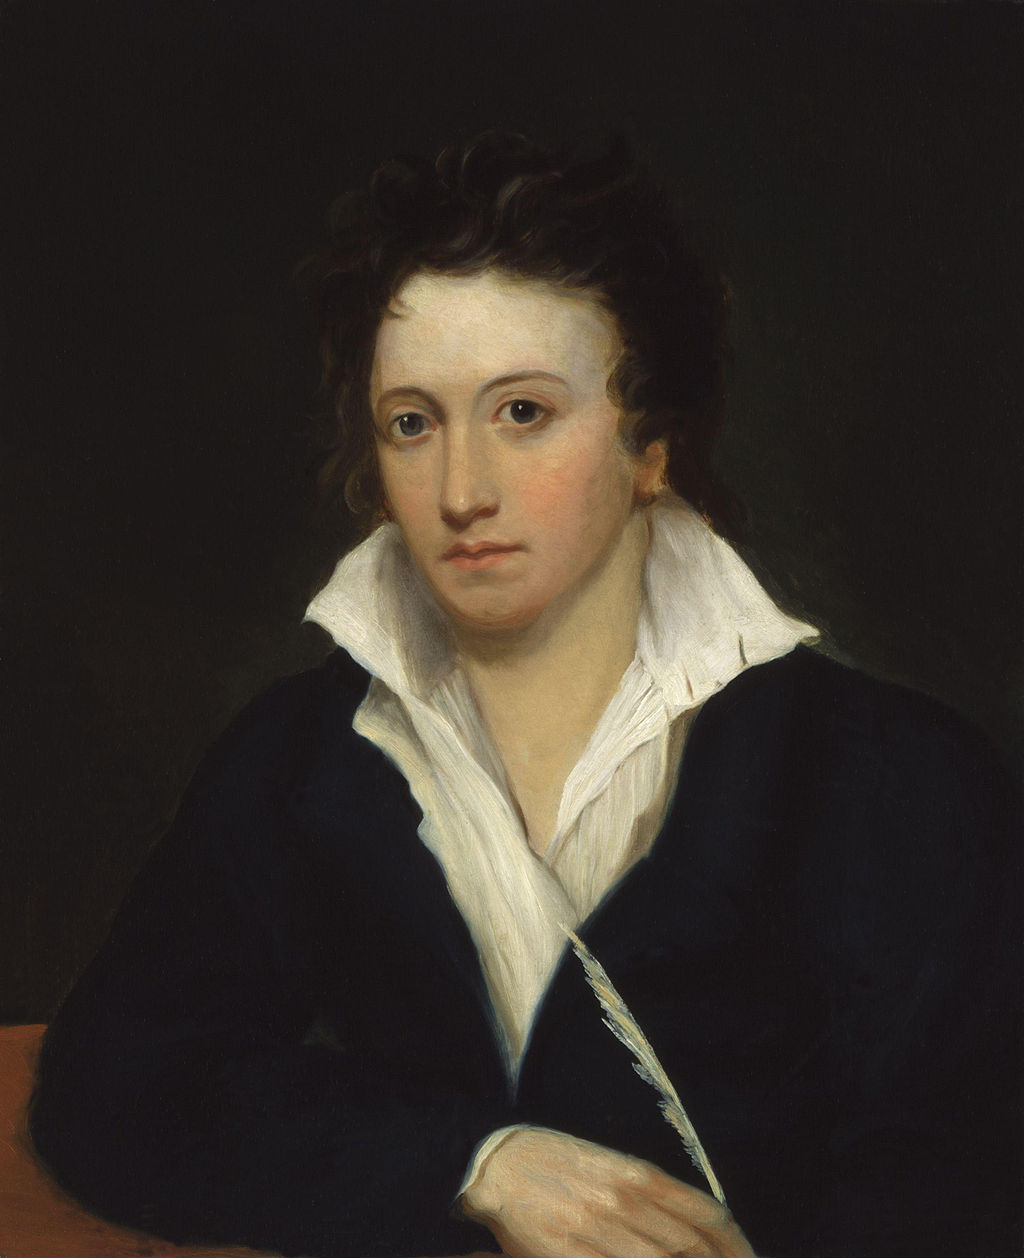 painted portrait of percy shelley